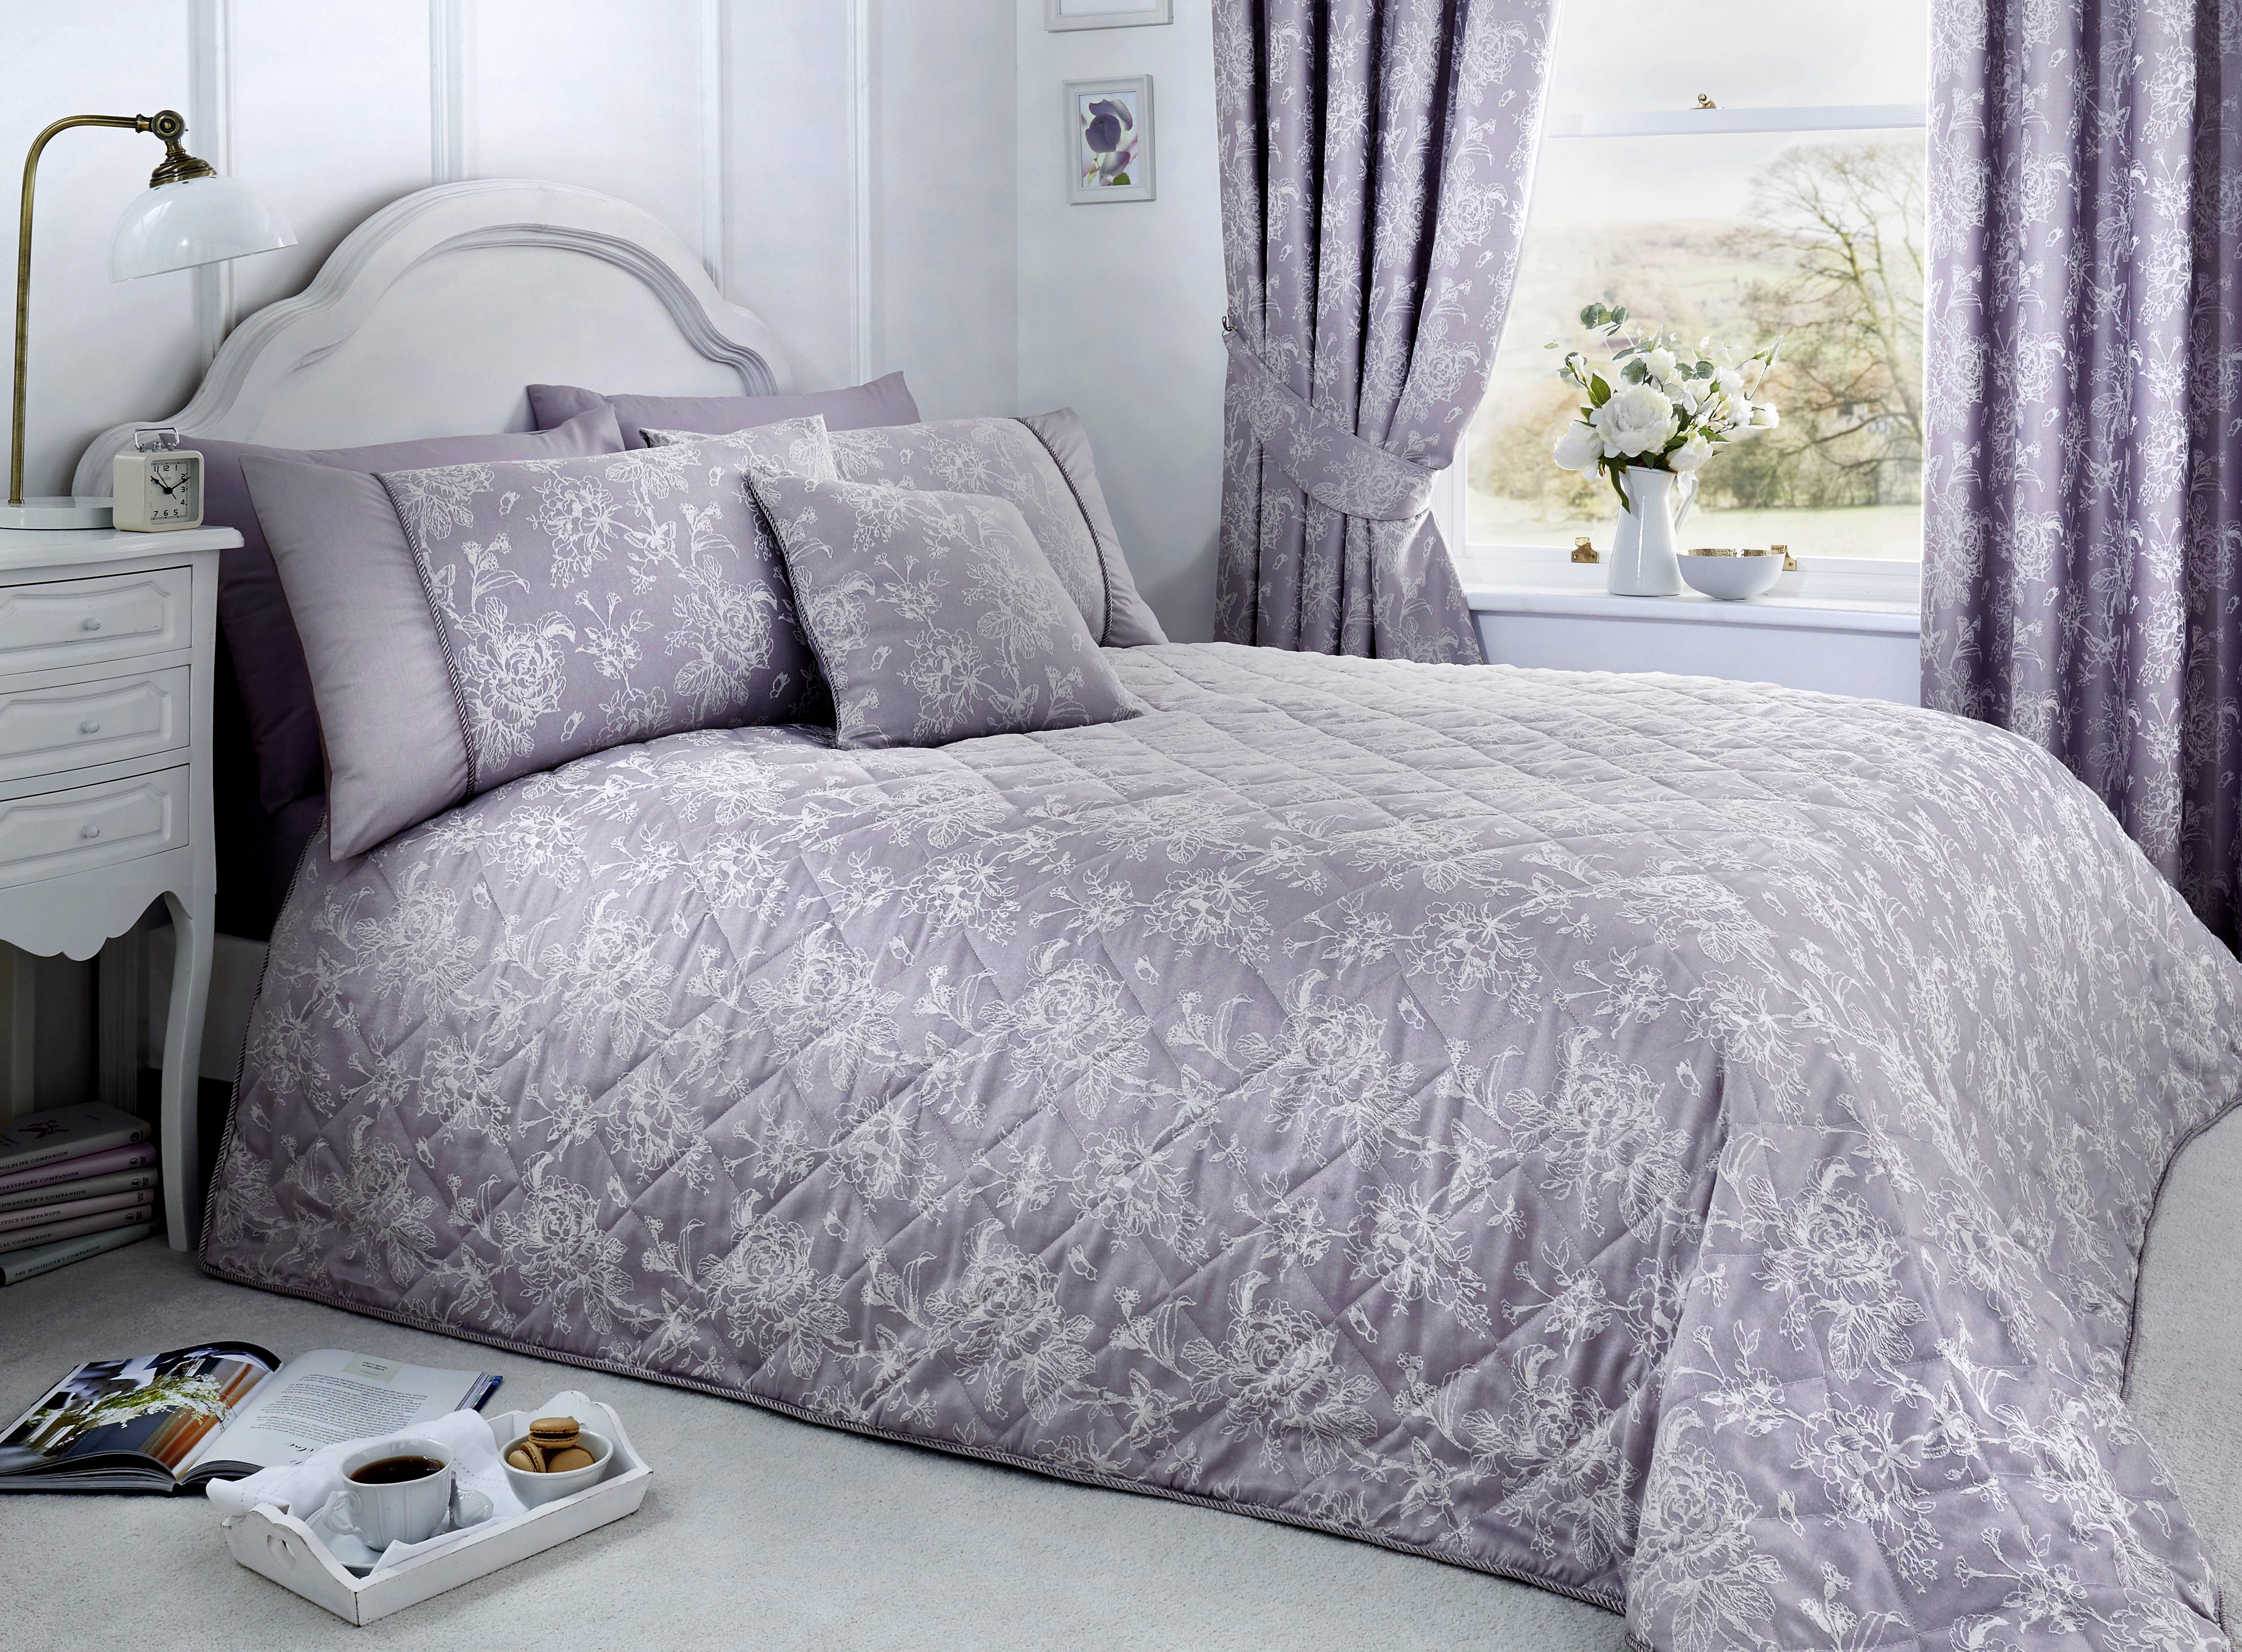 Jasmine - Damask Easy Care Bedding Set, Curtains & Cushions in Lavender - by D&D Woven